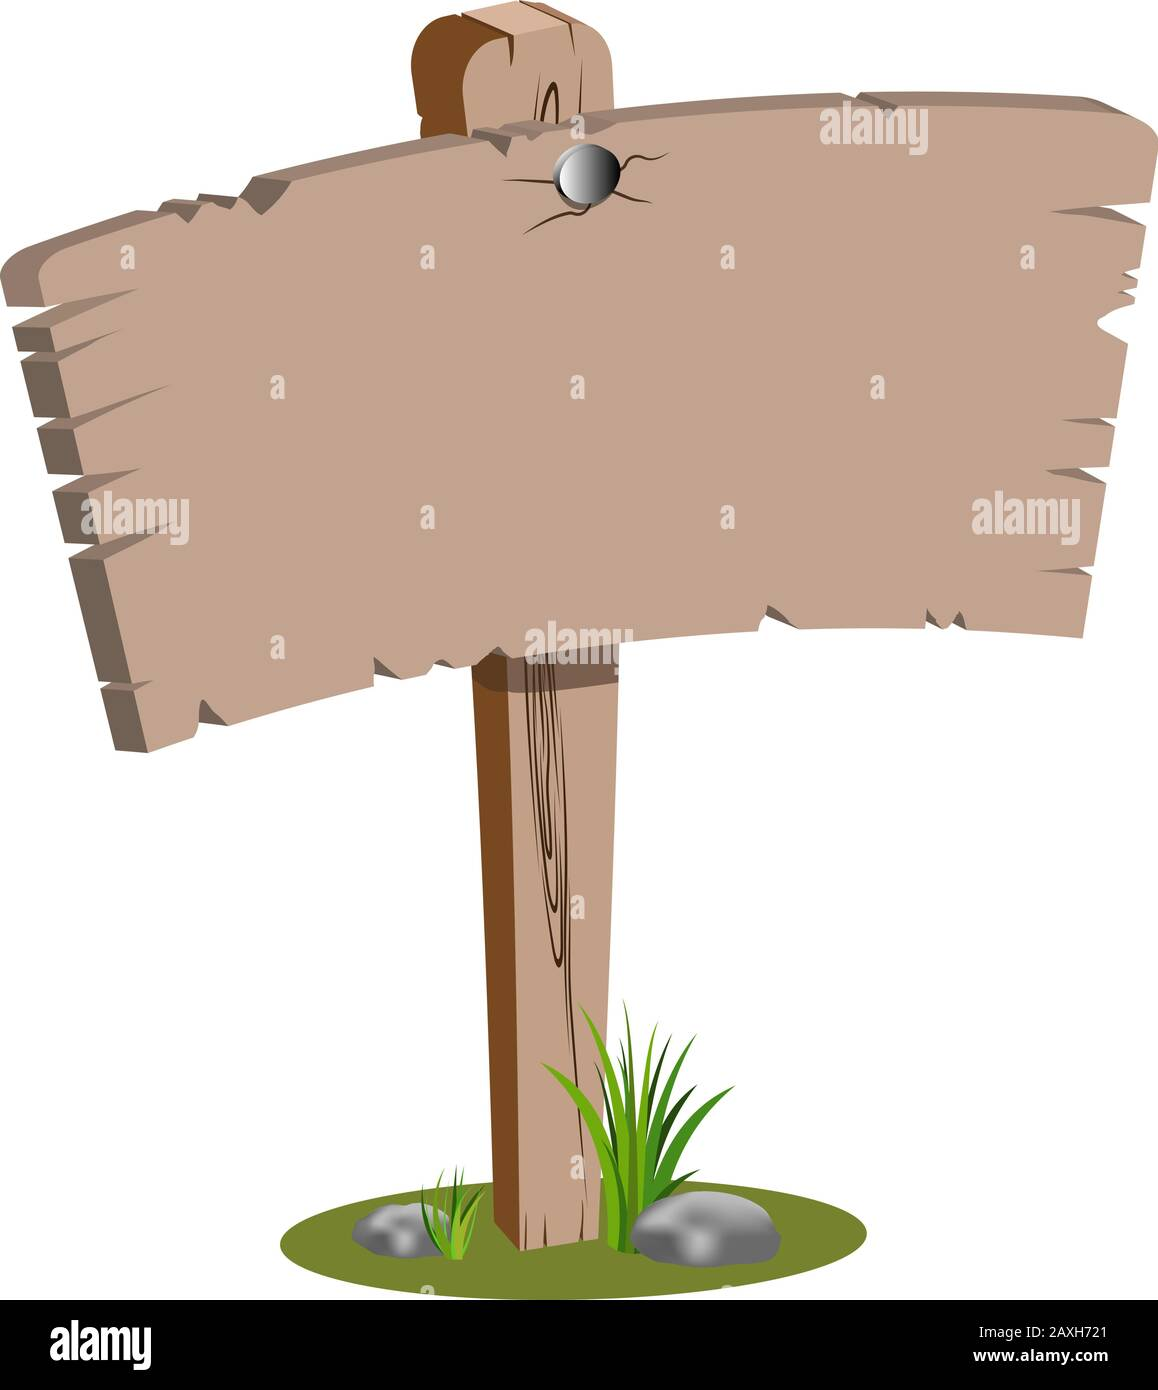 Wooden cartoon vector blank sign poster isolated on white. Cartoon illustration of old wooden tree with green grass and nice stones on the bottom. Goo Stock Vector